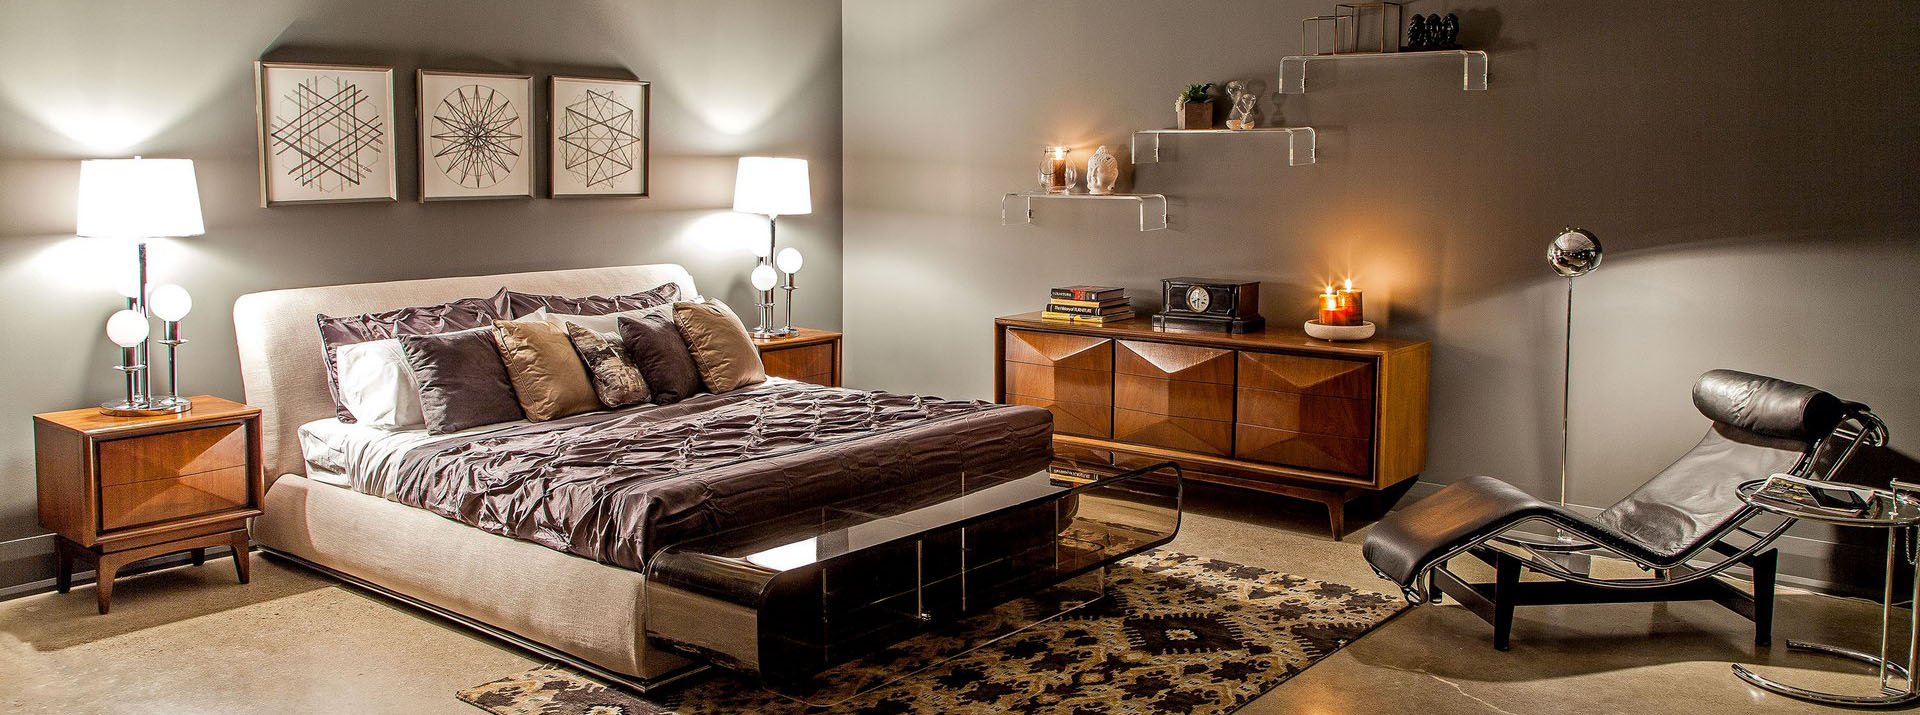 Carrocel Bedroom Furniture Display